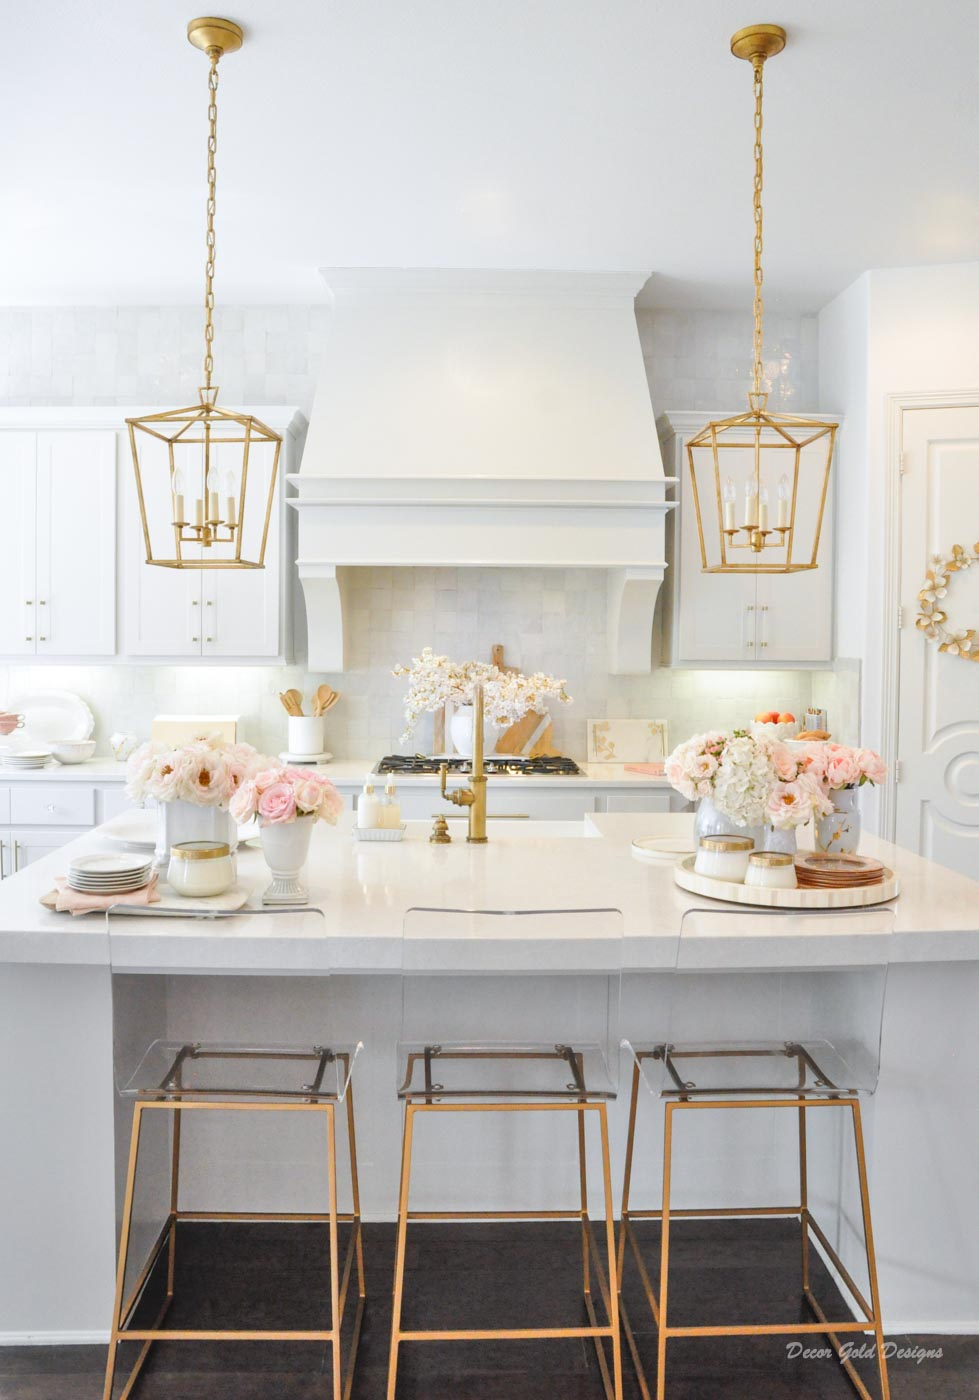 Spring home tour kitchen gold accents white pink flowers